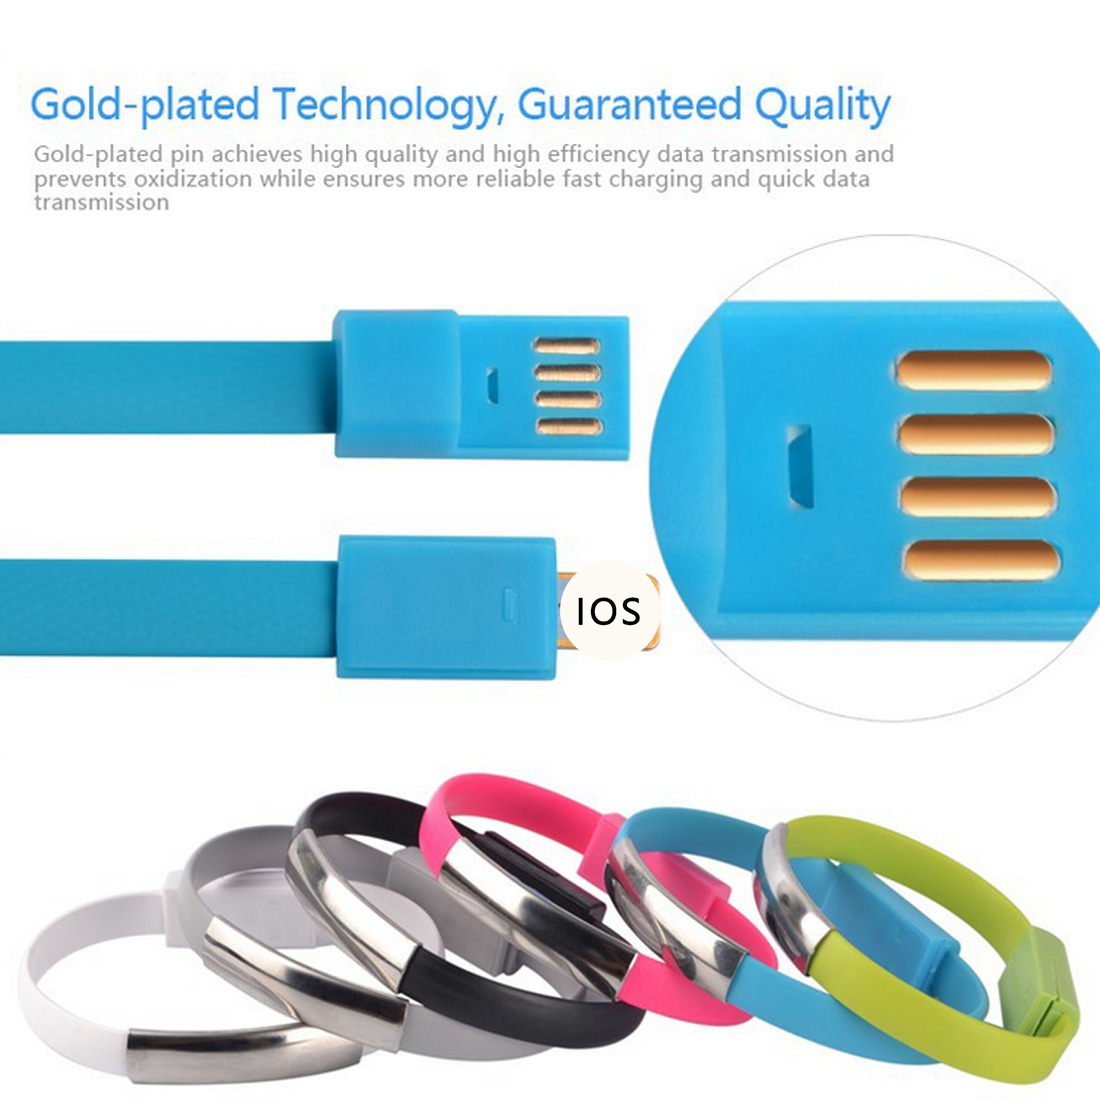 Iphone 6 Charger Bracelet Kabel Data Gelang Micro Usb V8 Cable Samsung Android New Wrist Sync Charging Wristband For Huawei Xiaomi 5